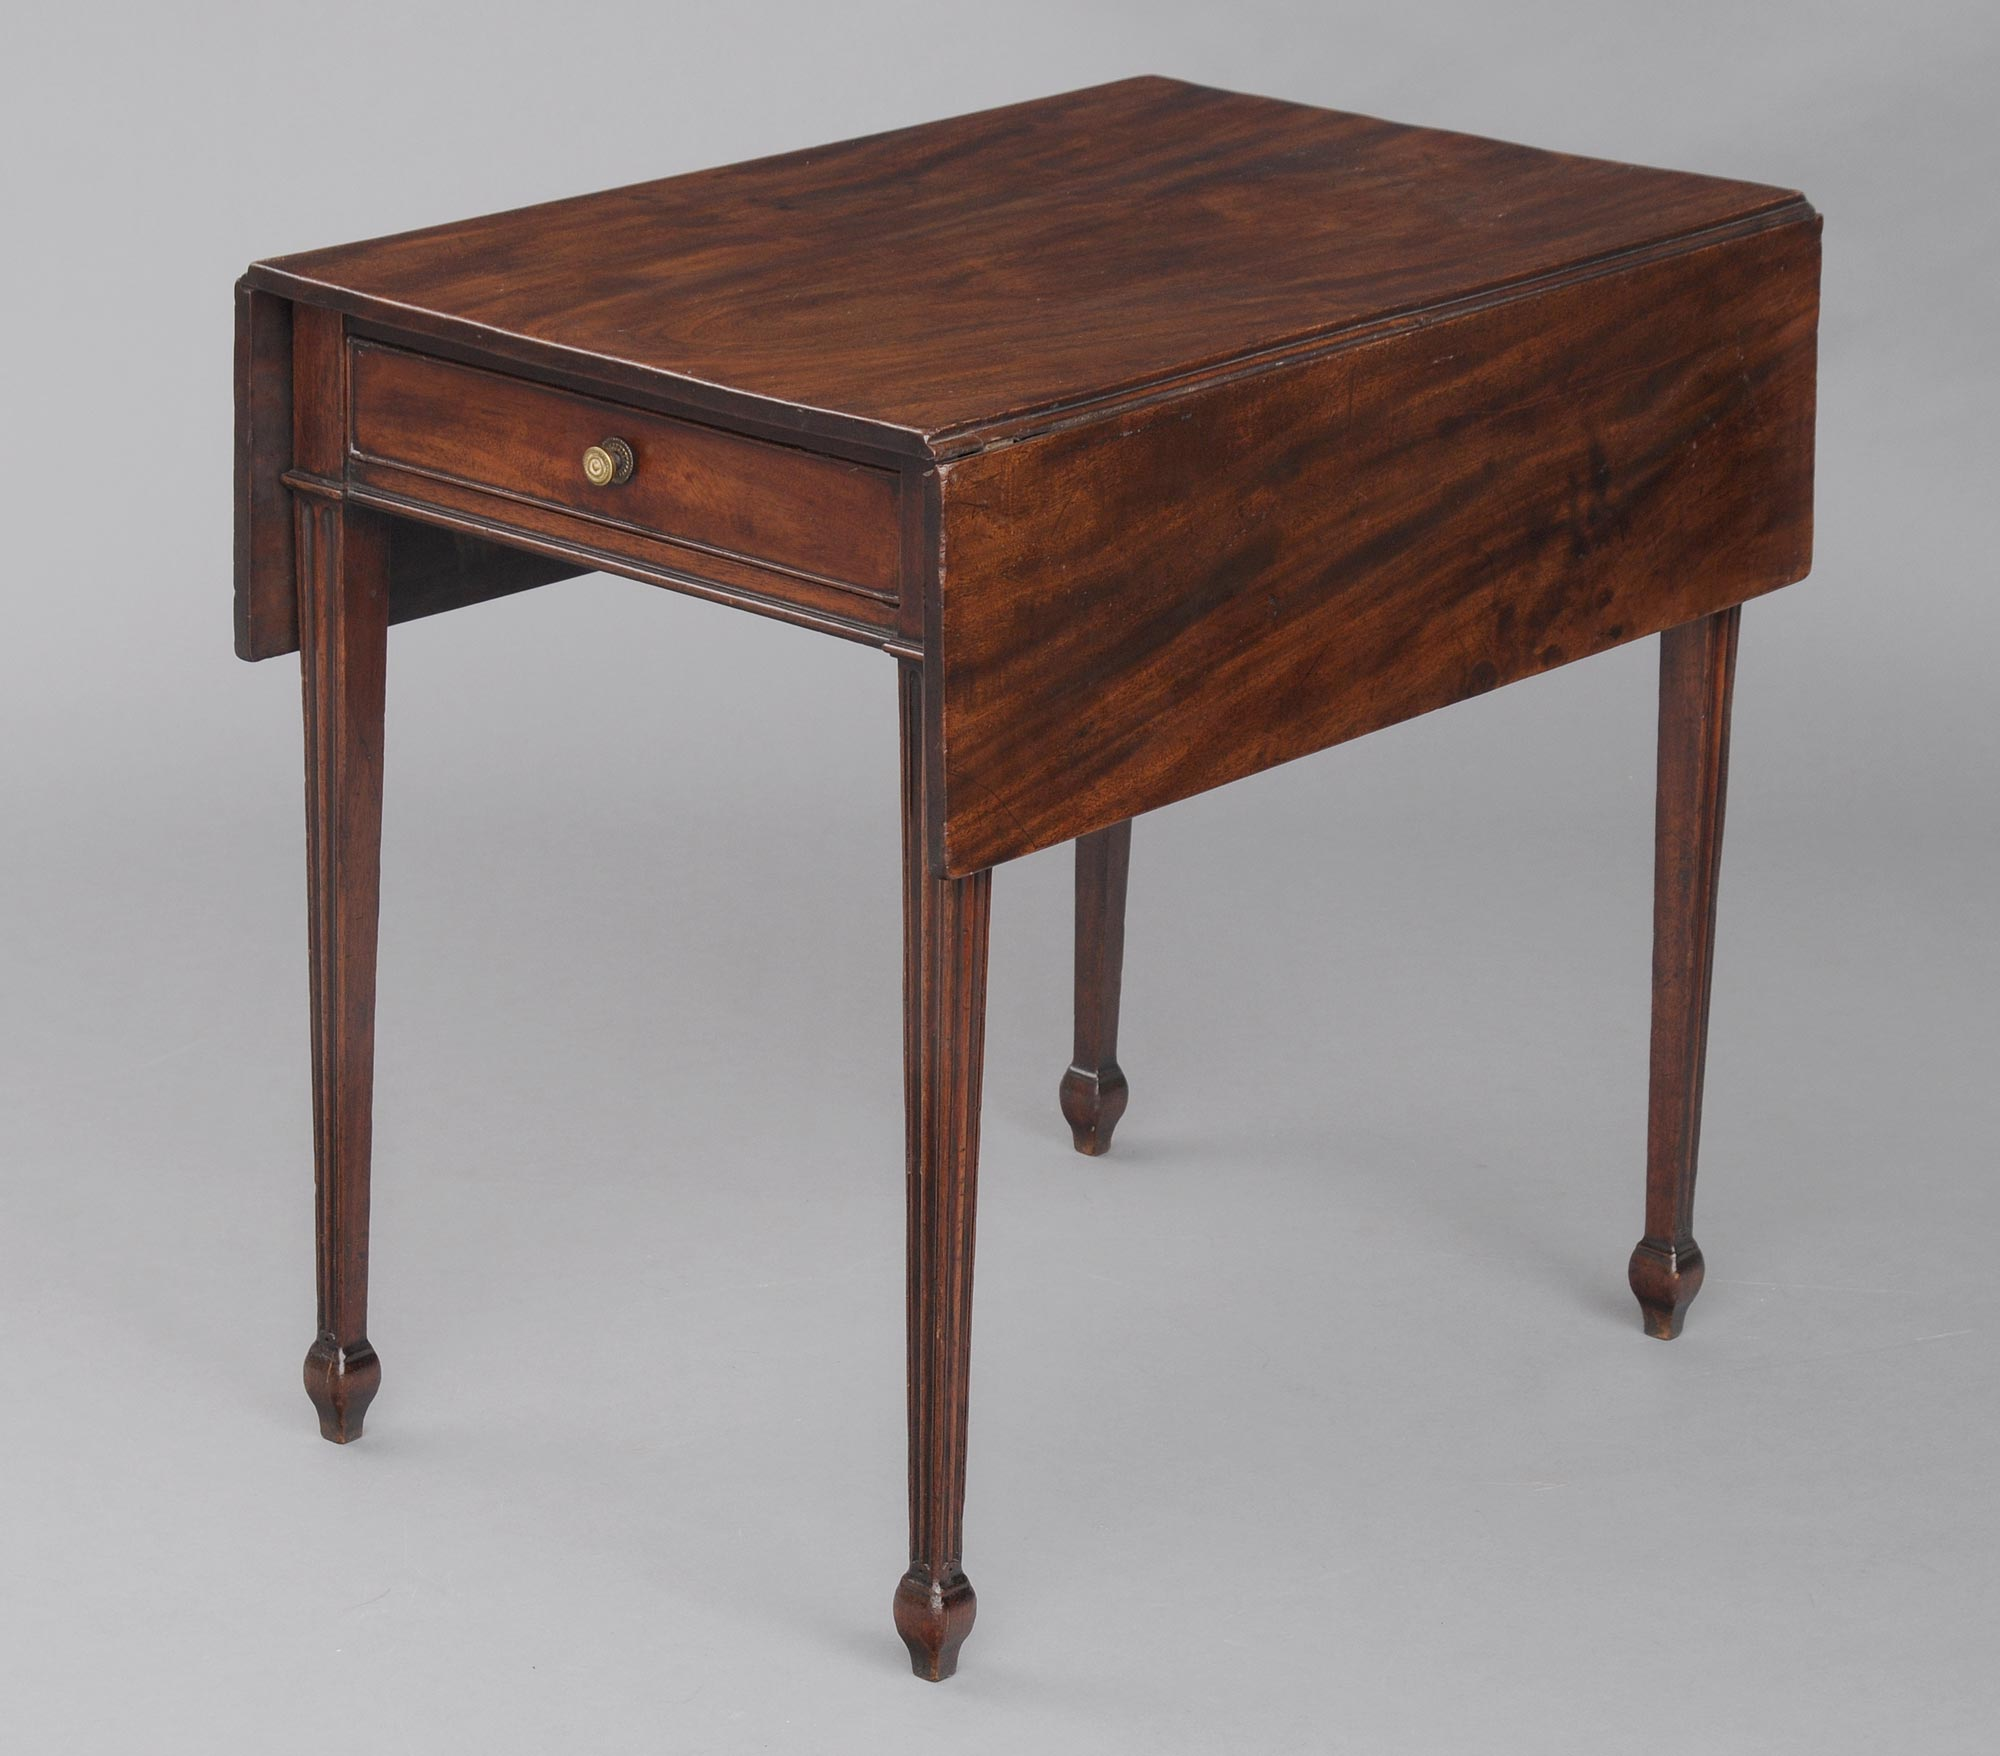 Superieur Antique English Georgian Pembroke Table